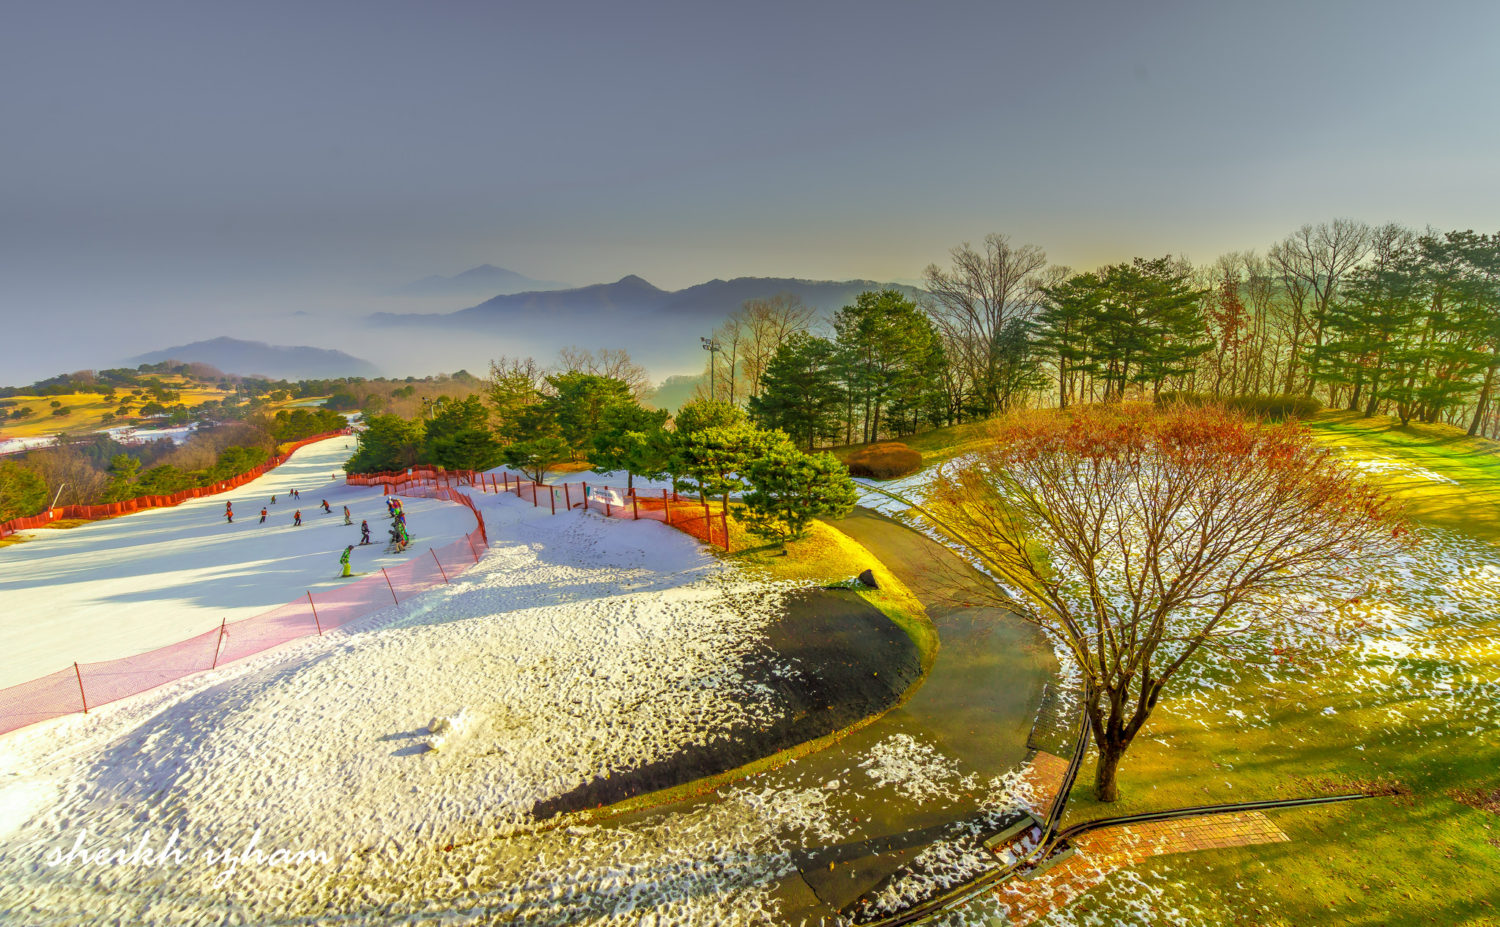 Vivaldi Park ski resort near Seoul